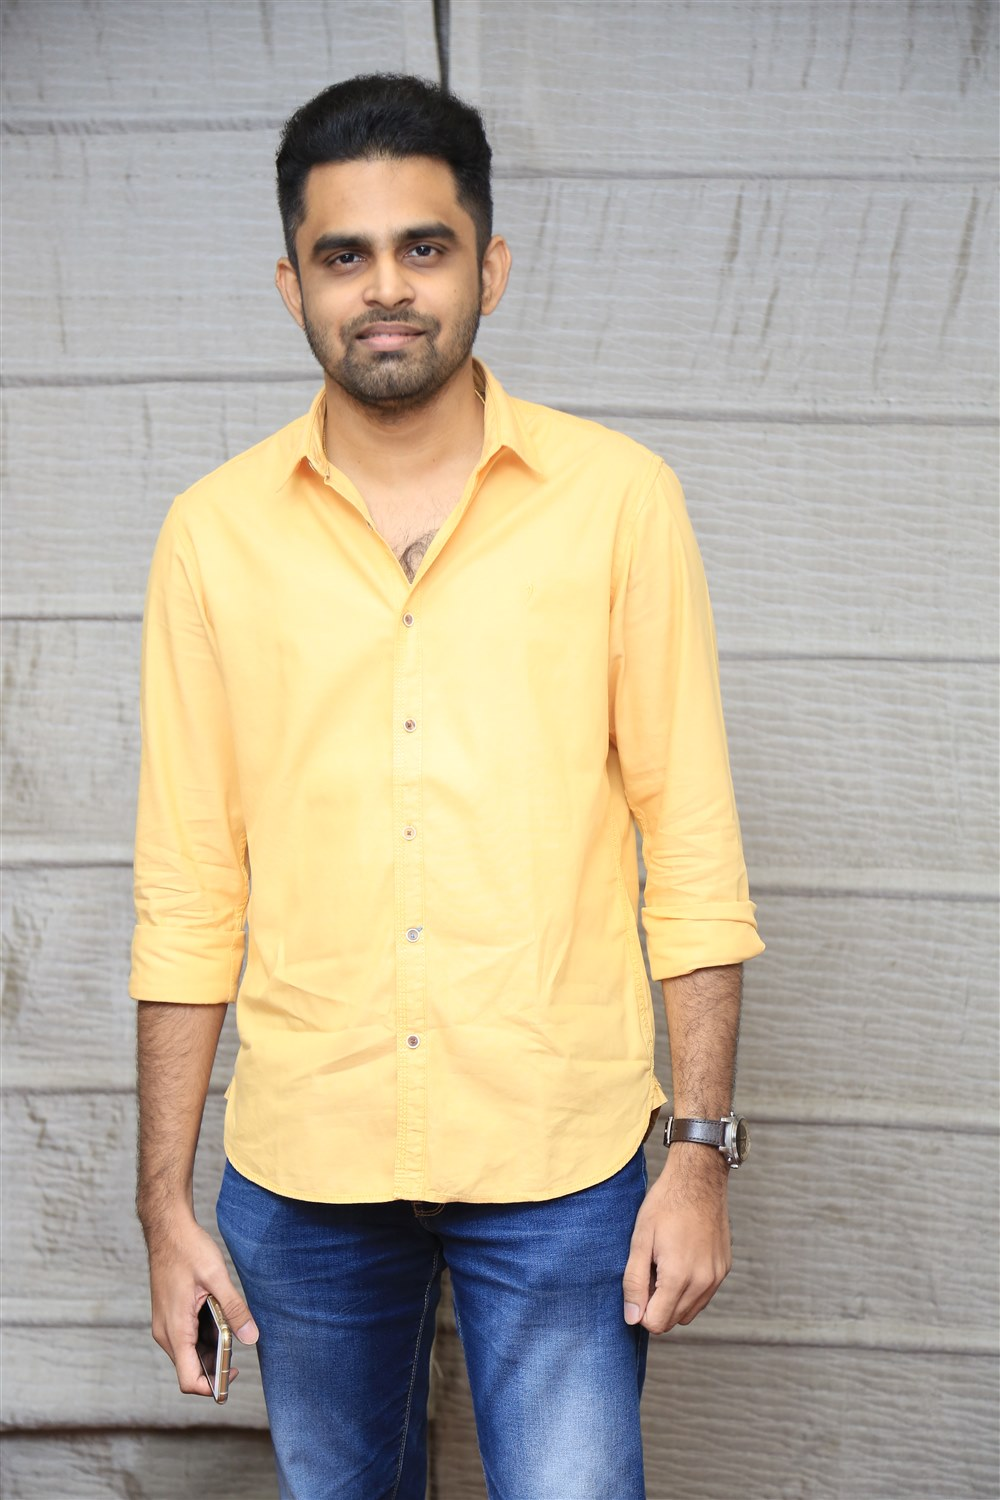 Director Balaji Mohan @ The Luxury Affair Wedding Expo Launch Photos